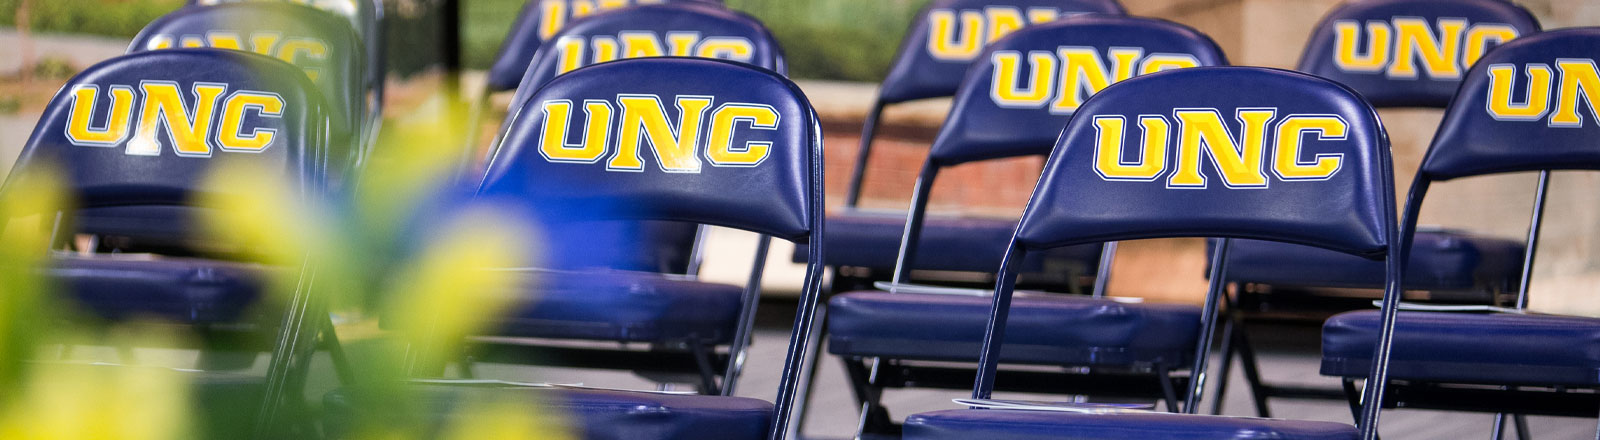 Photo of UNC logo chairs at graduation